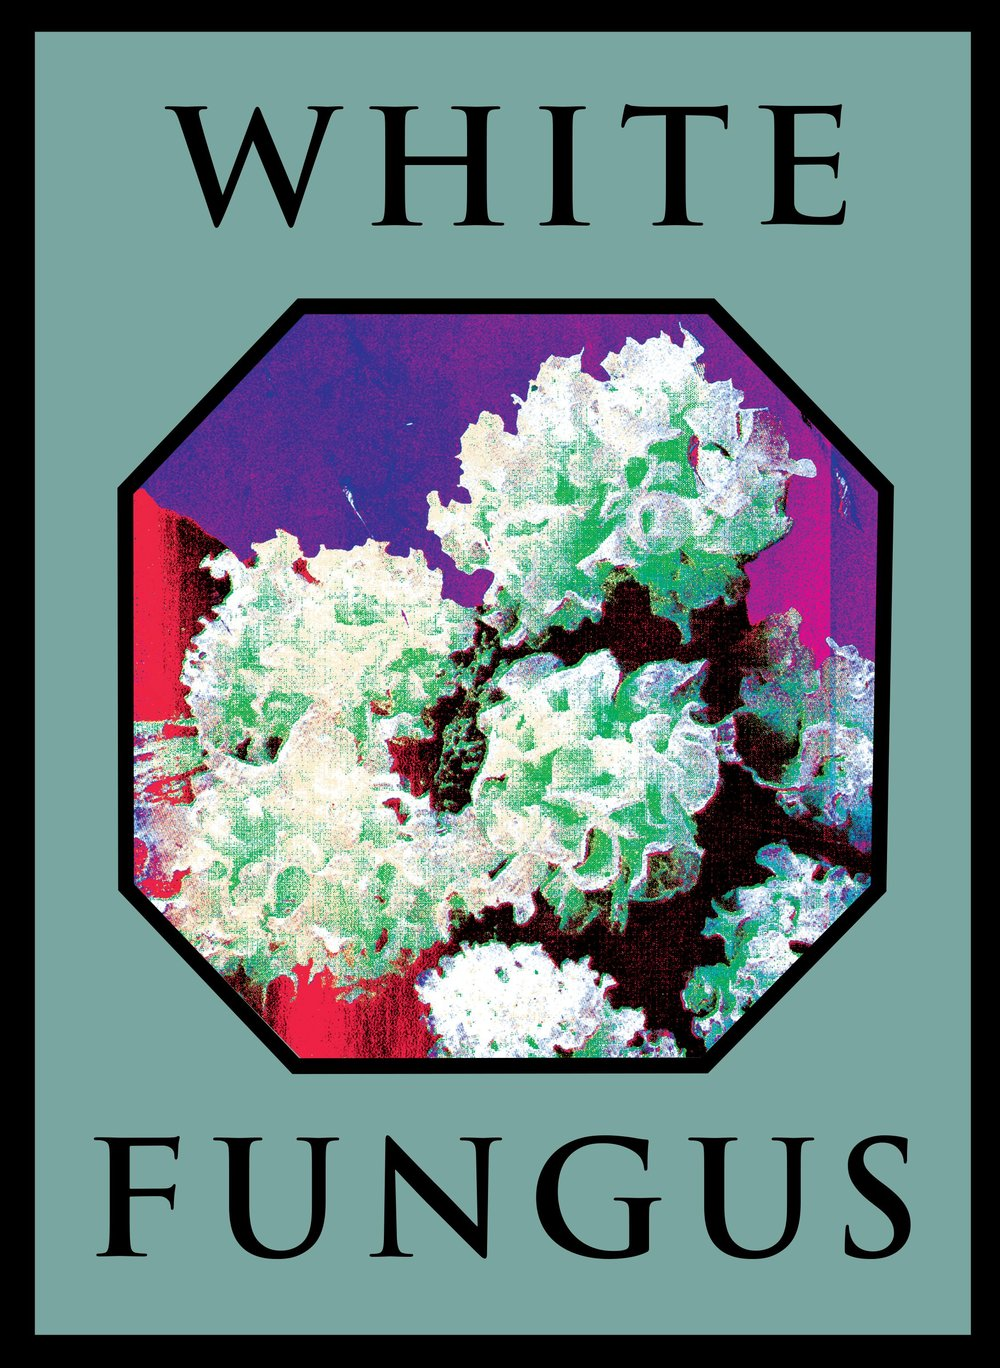 White Fungus   Issue 16. January 2019. $10.00